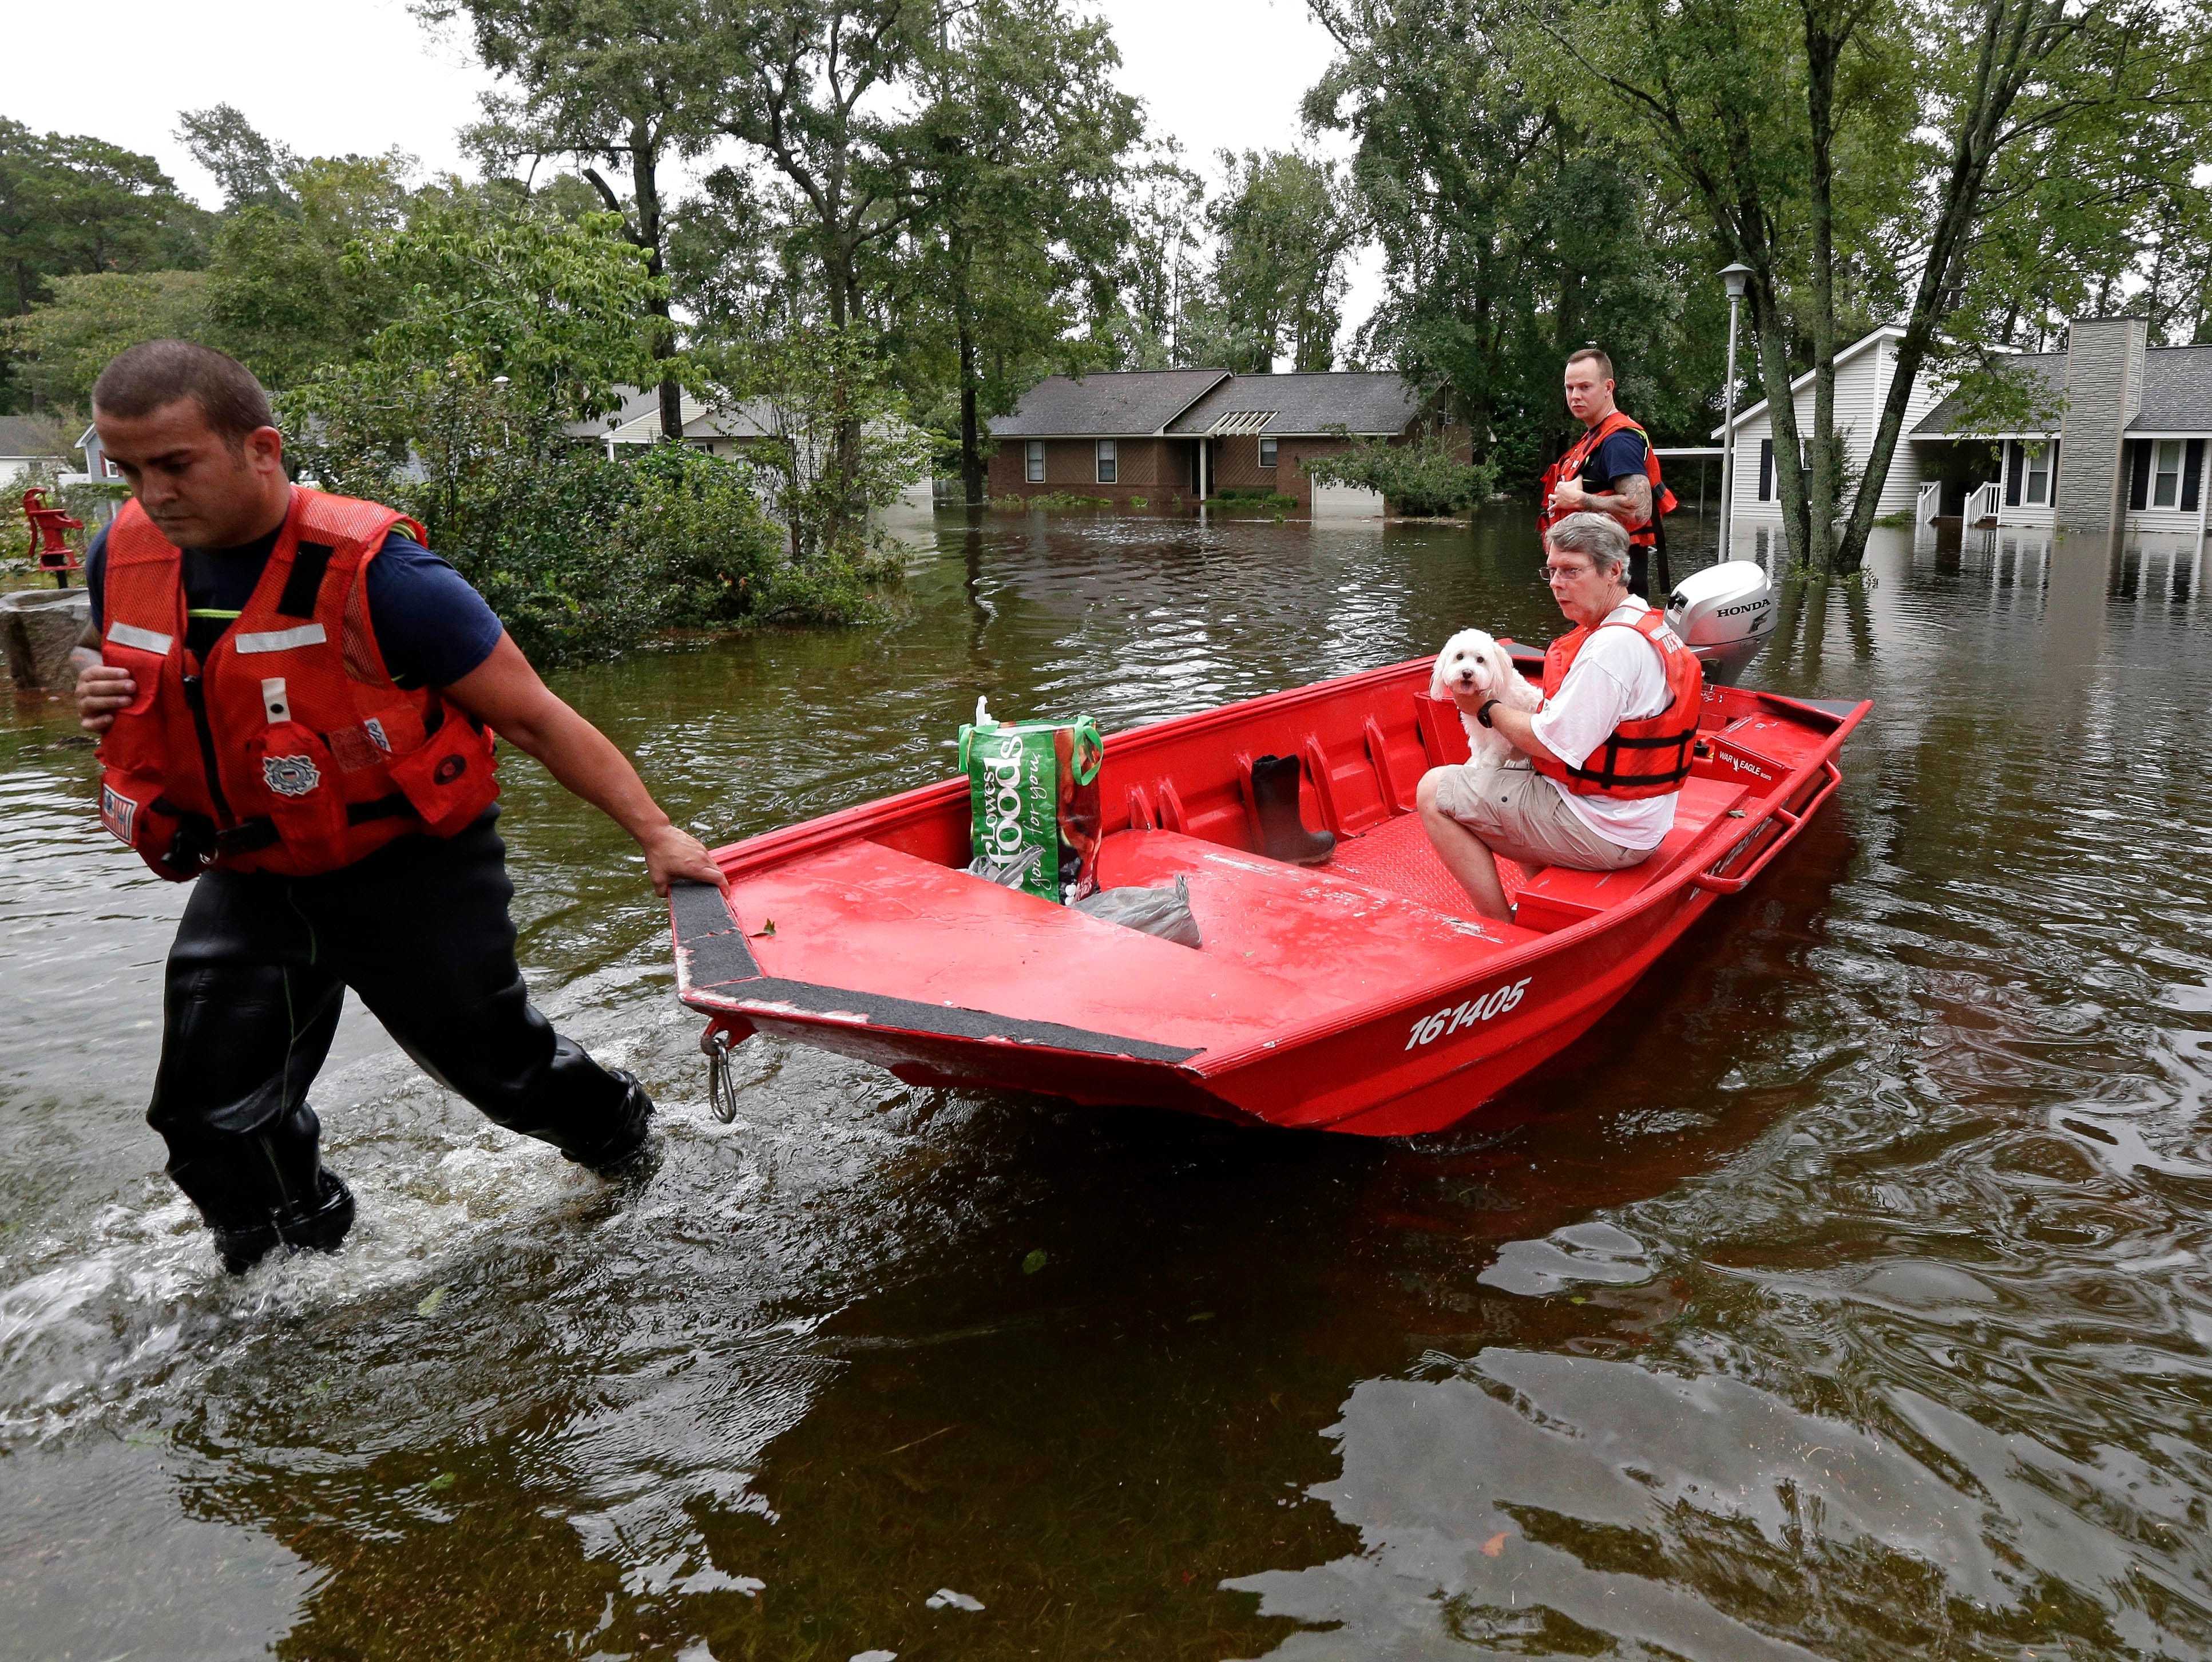 Roger Hedgepeth and his dog Bodie are assisted by members of the U.S. Coast Guard in Lumberton, N.C., Sunday, Sept. 16, 2018, following flooding from Hurricane Florence. Hedgepeth was moved to higher ground.